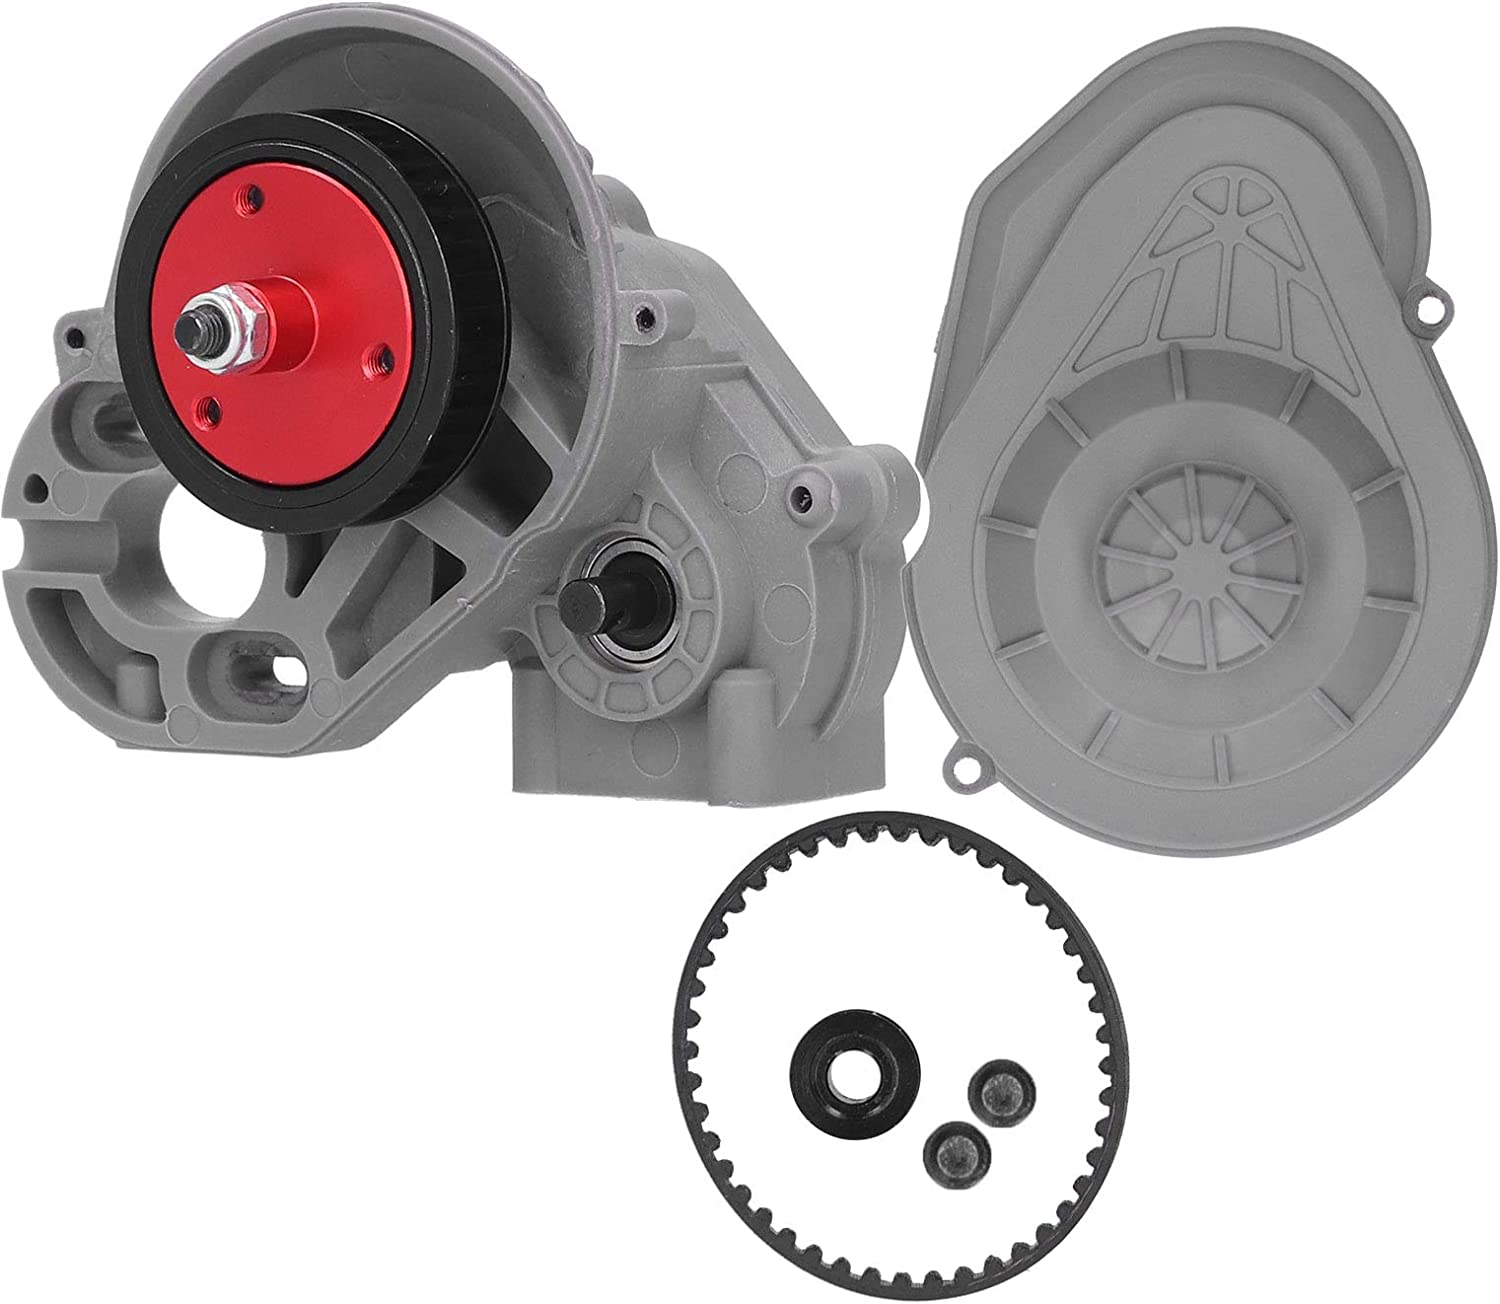 Vbestlife RC Single Speed OFFicial Gearbox Axia Transmission Complete Max 45% OFF for